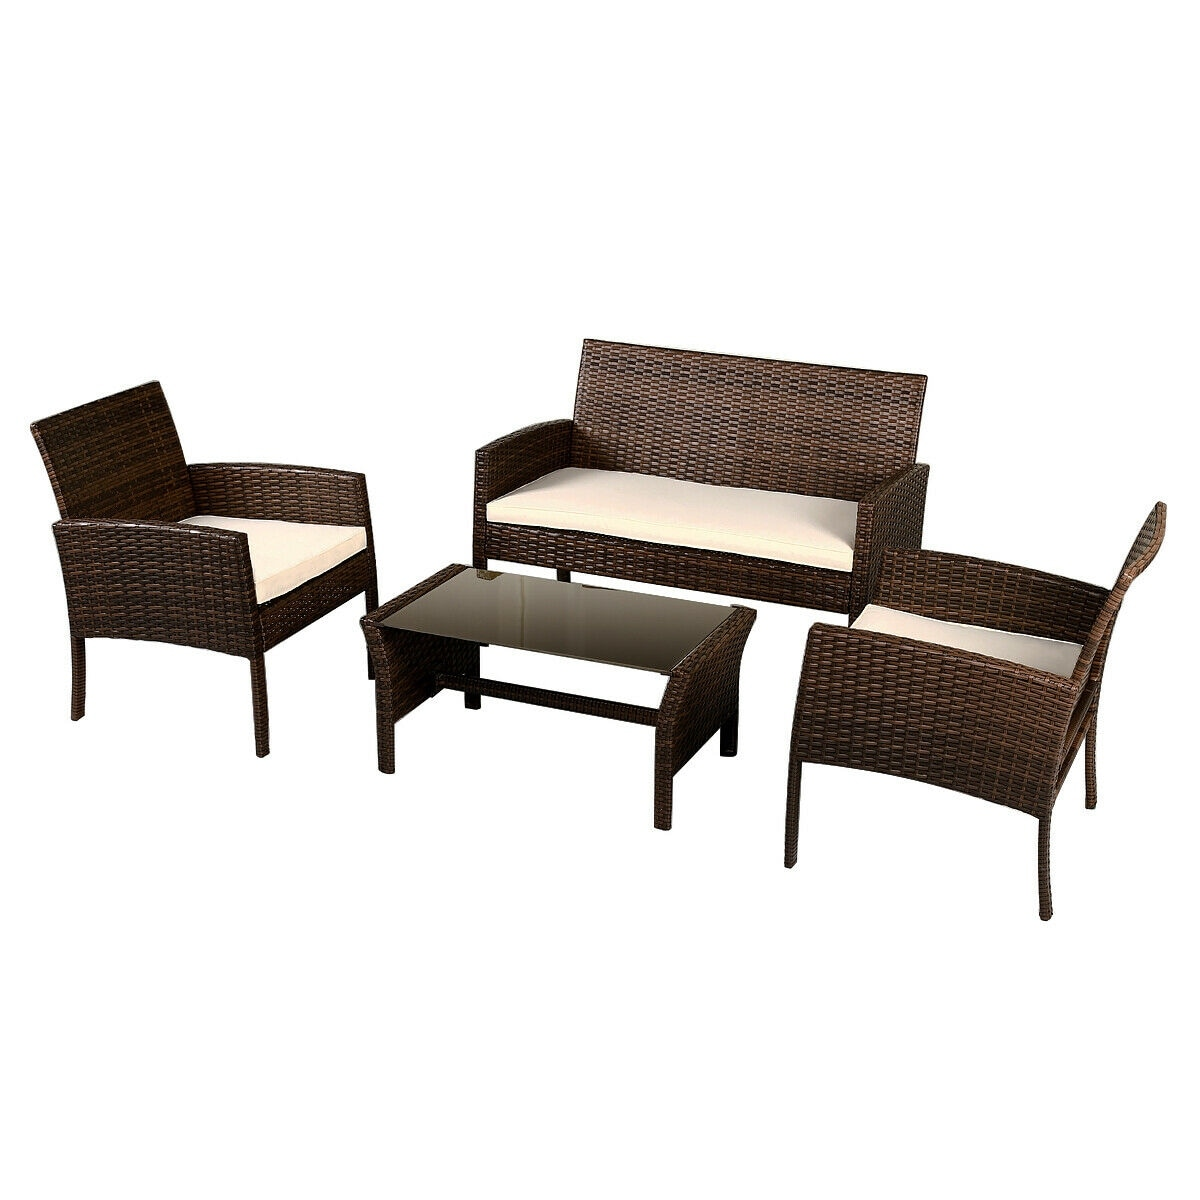 Costway 4 Pieces Patio Furniture Wicker Rattan Sofa Set Garden Coffee Table Free Shipping Today 16954761